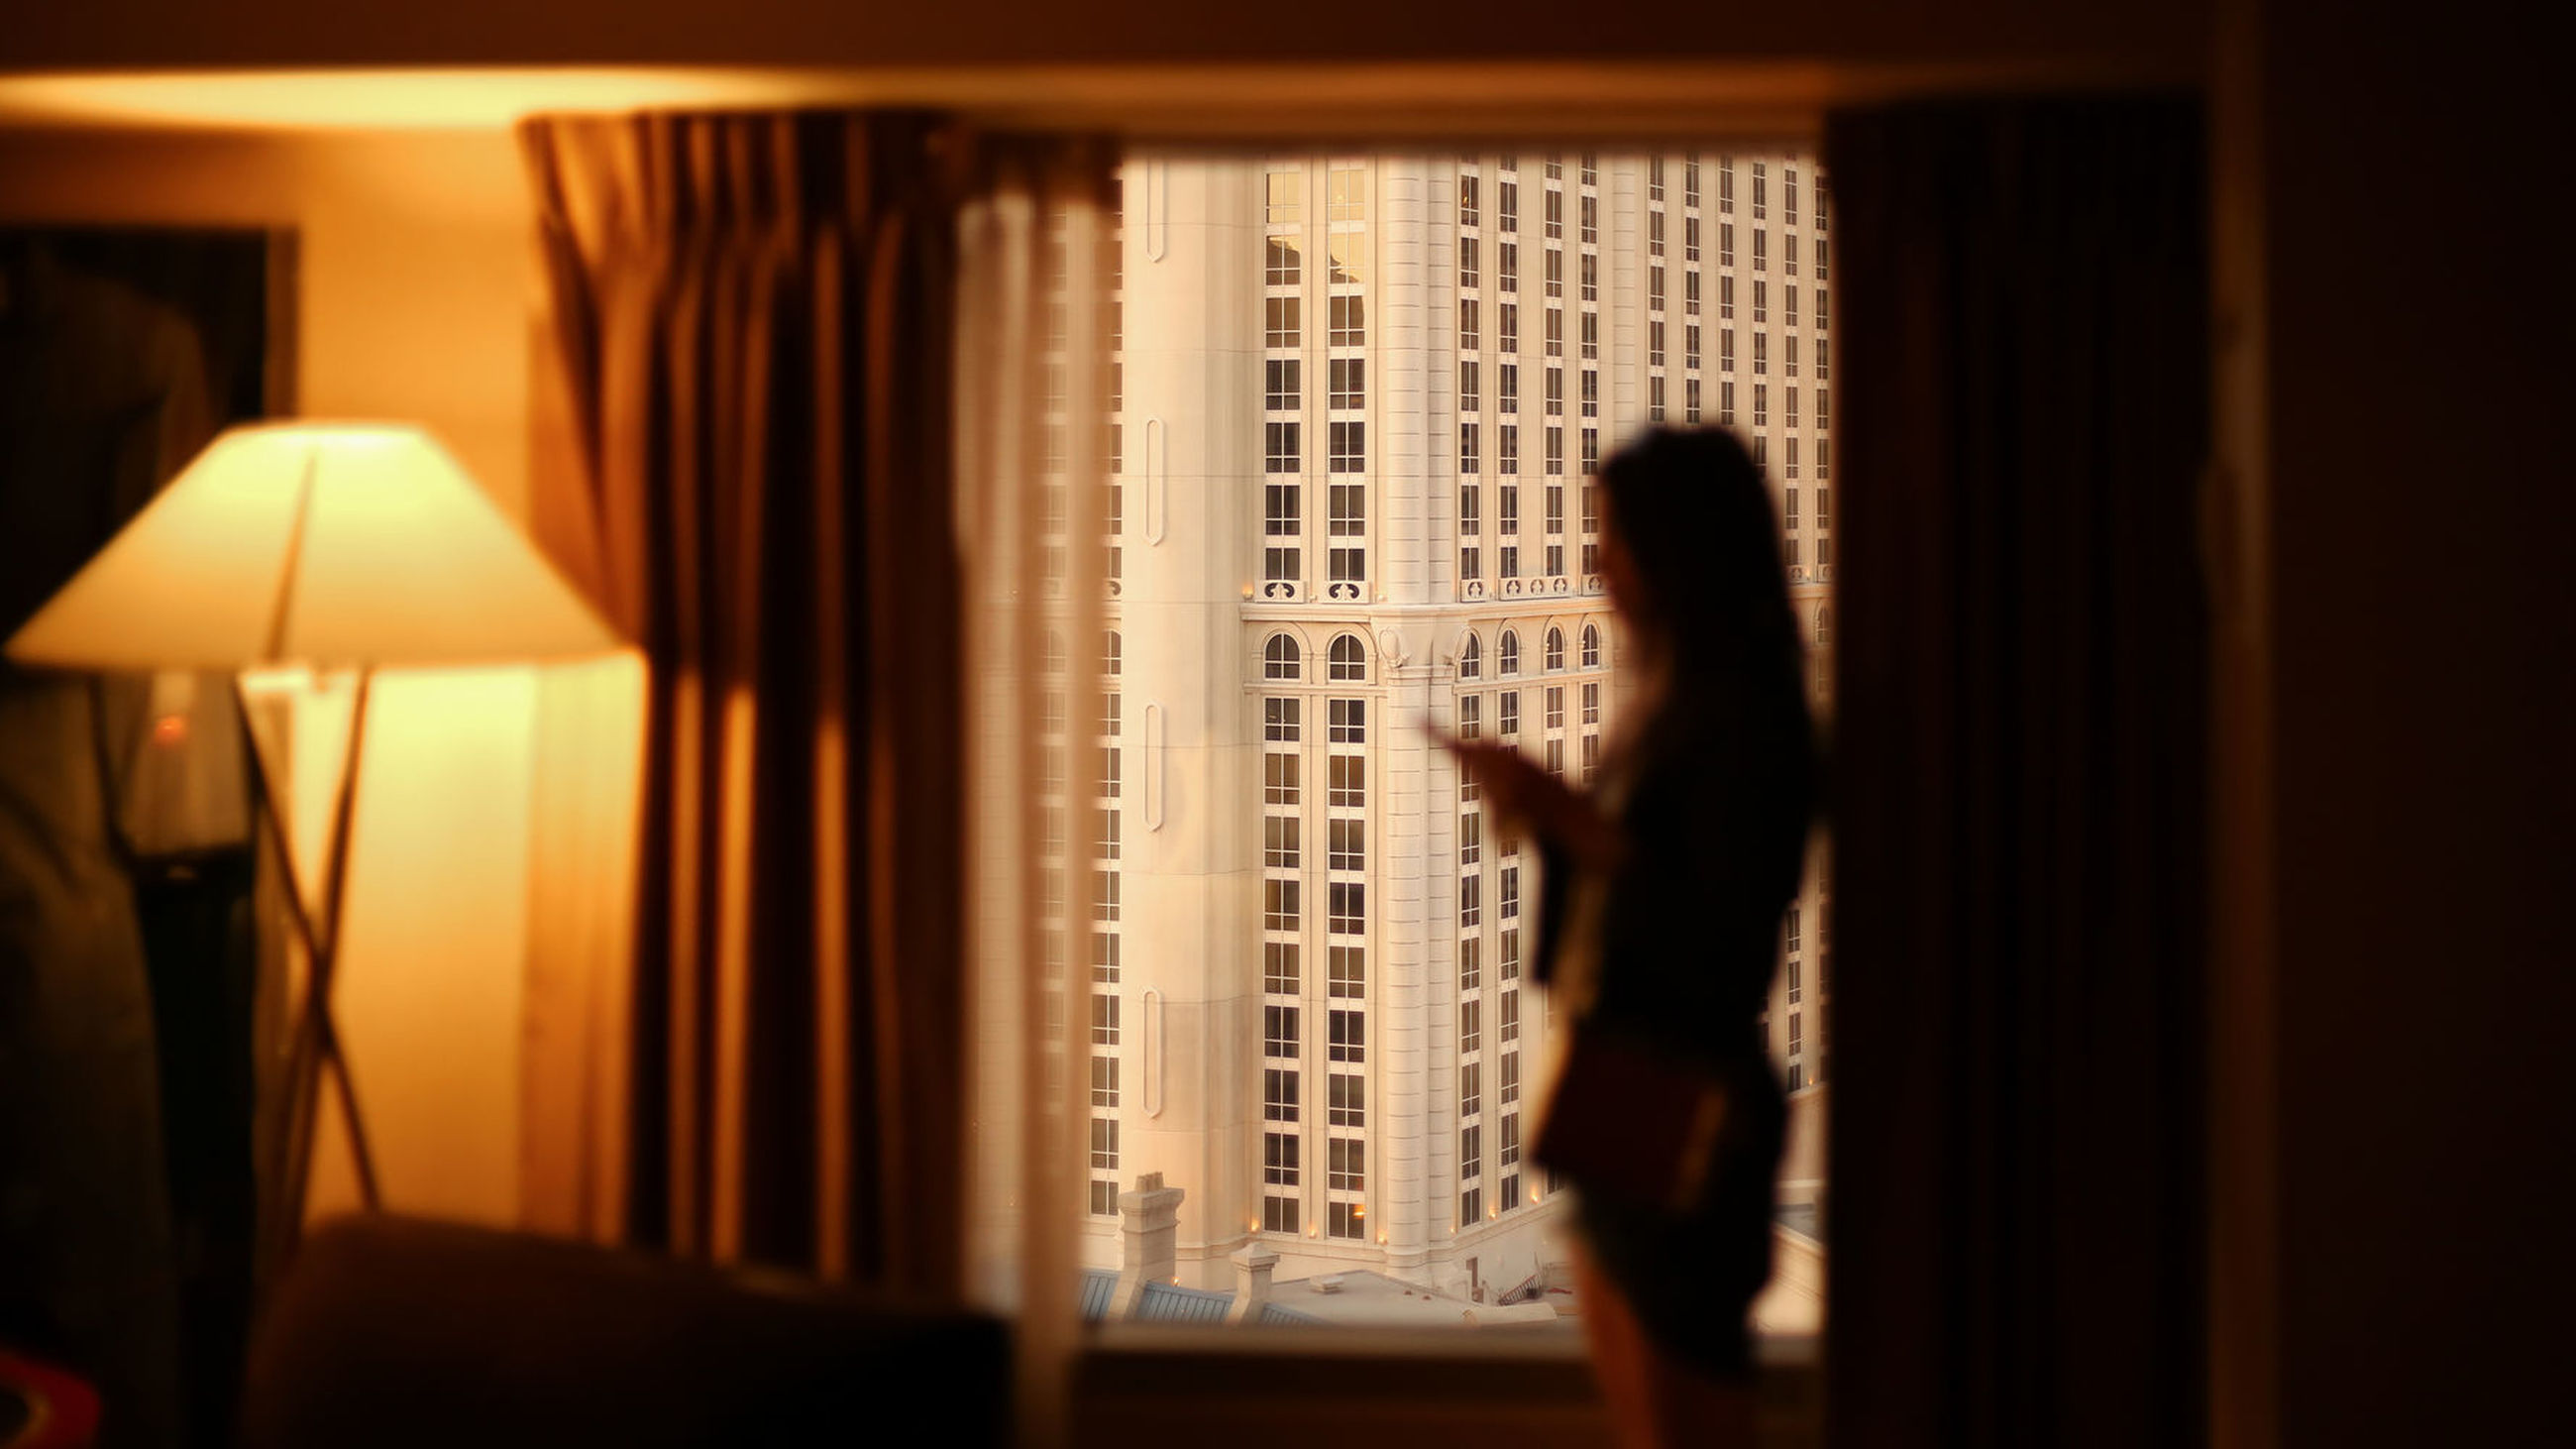 indoors, curtain, window, drapes, home interior, one person, selective focus, real people, standing, lifestyles, bedroom, day, close-up, people